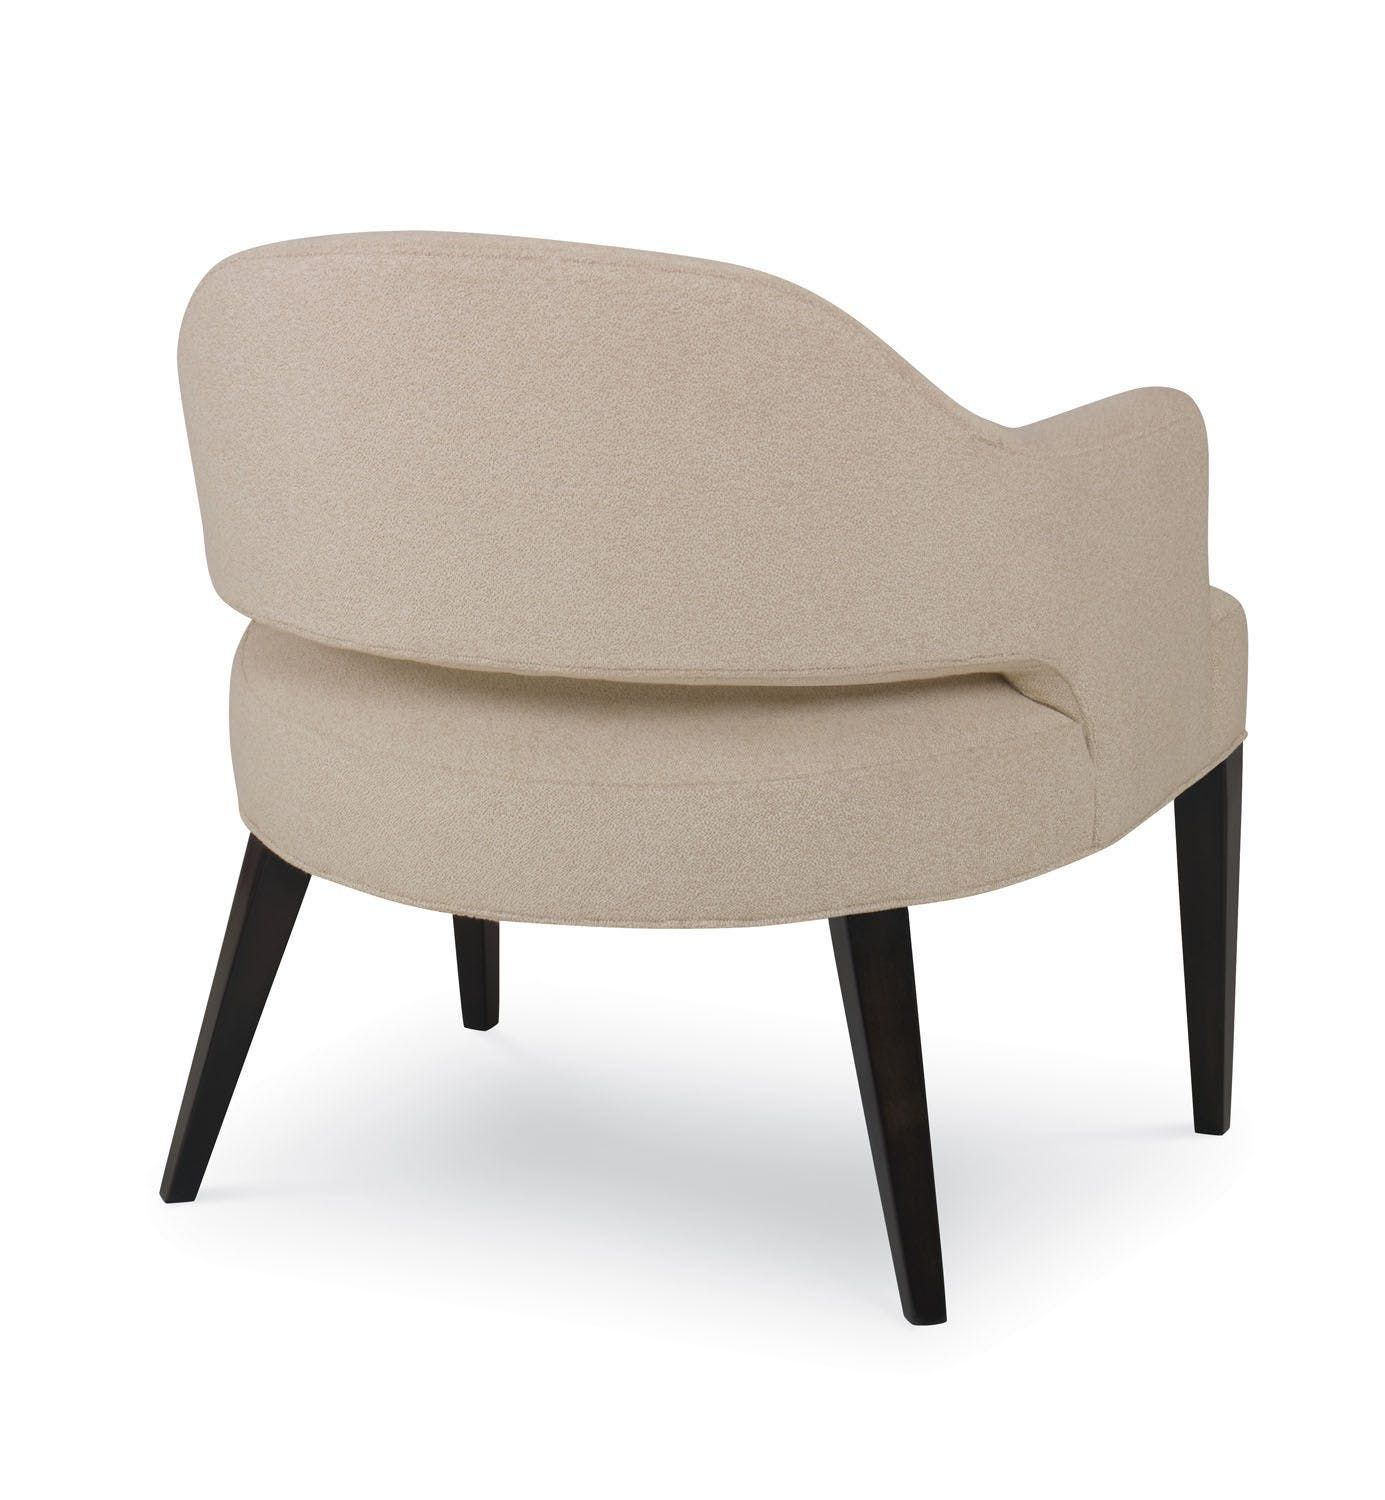 Shop For Kravet Alexander Chair, And Other Chairs At Kravet In New York, NY.